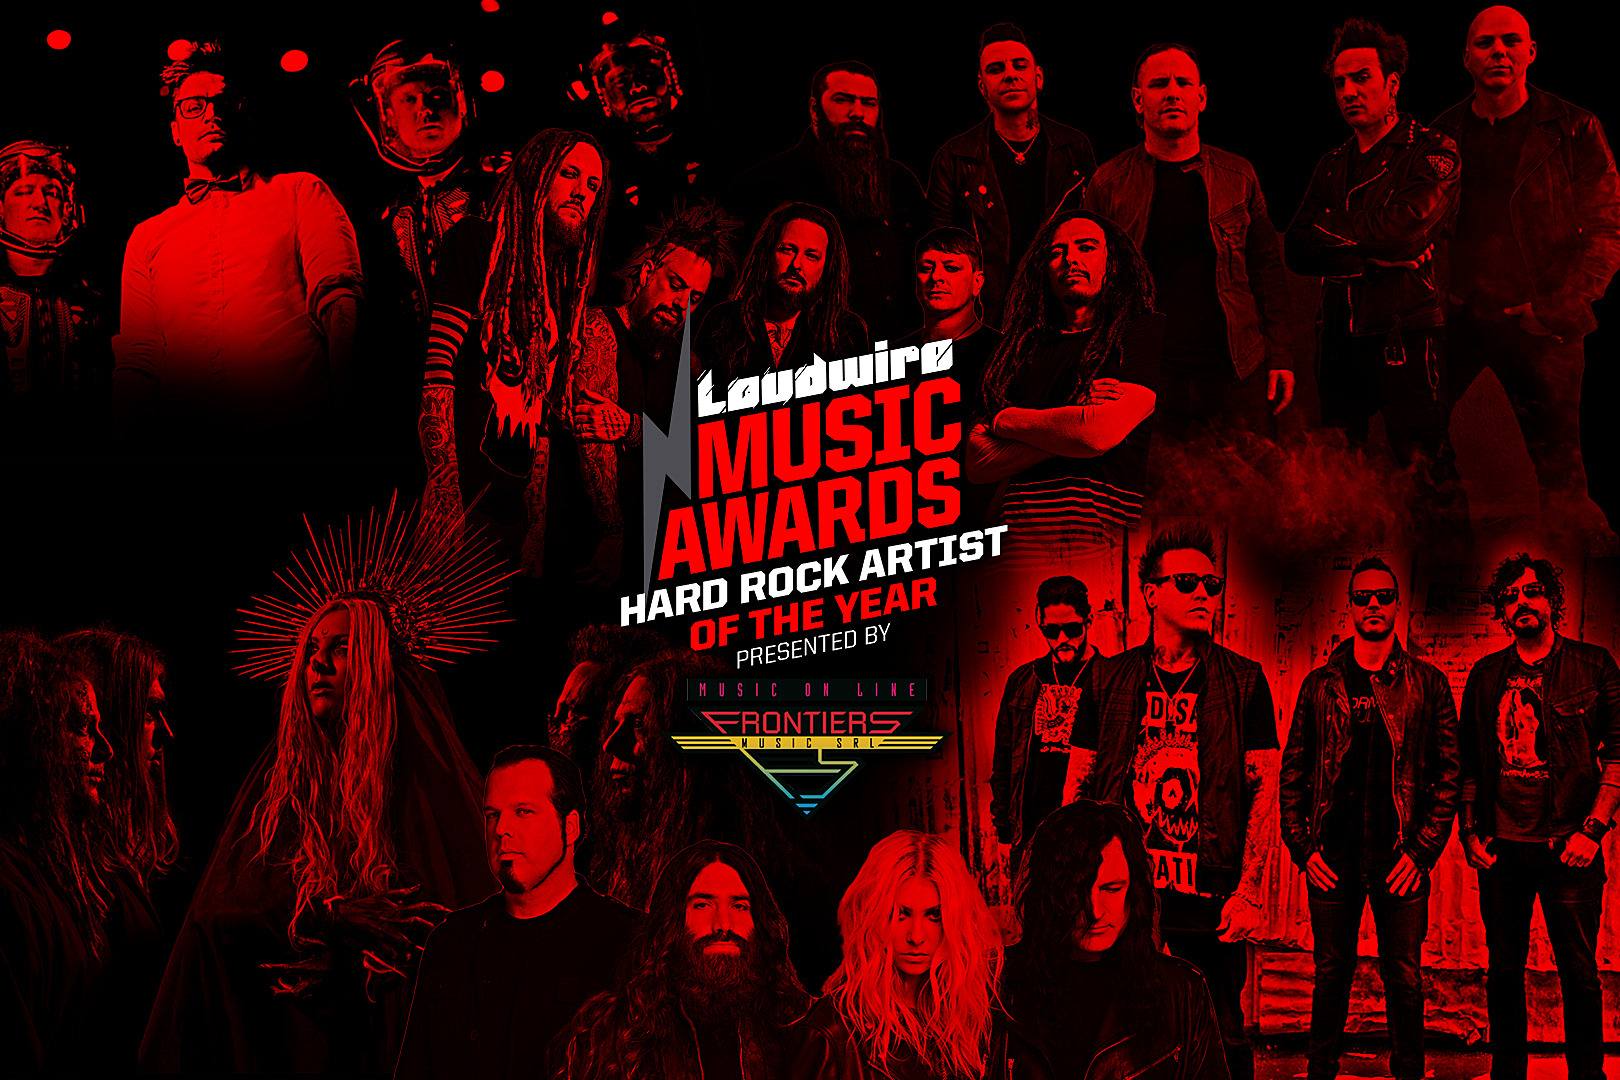 Vote for the Hard Rock Artist of the Year – 2017 Loudwire Music Awards